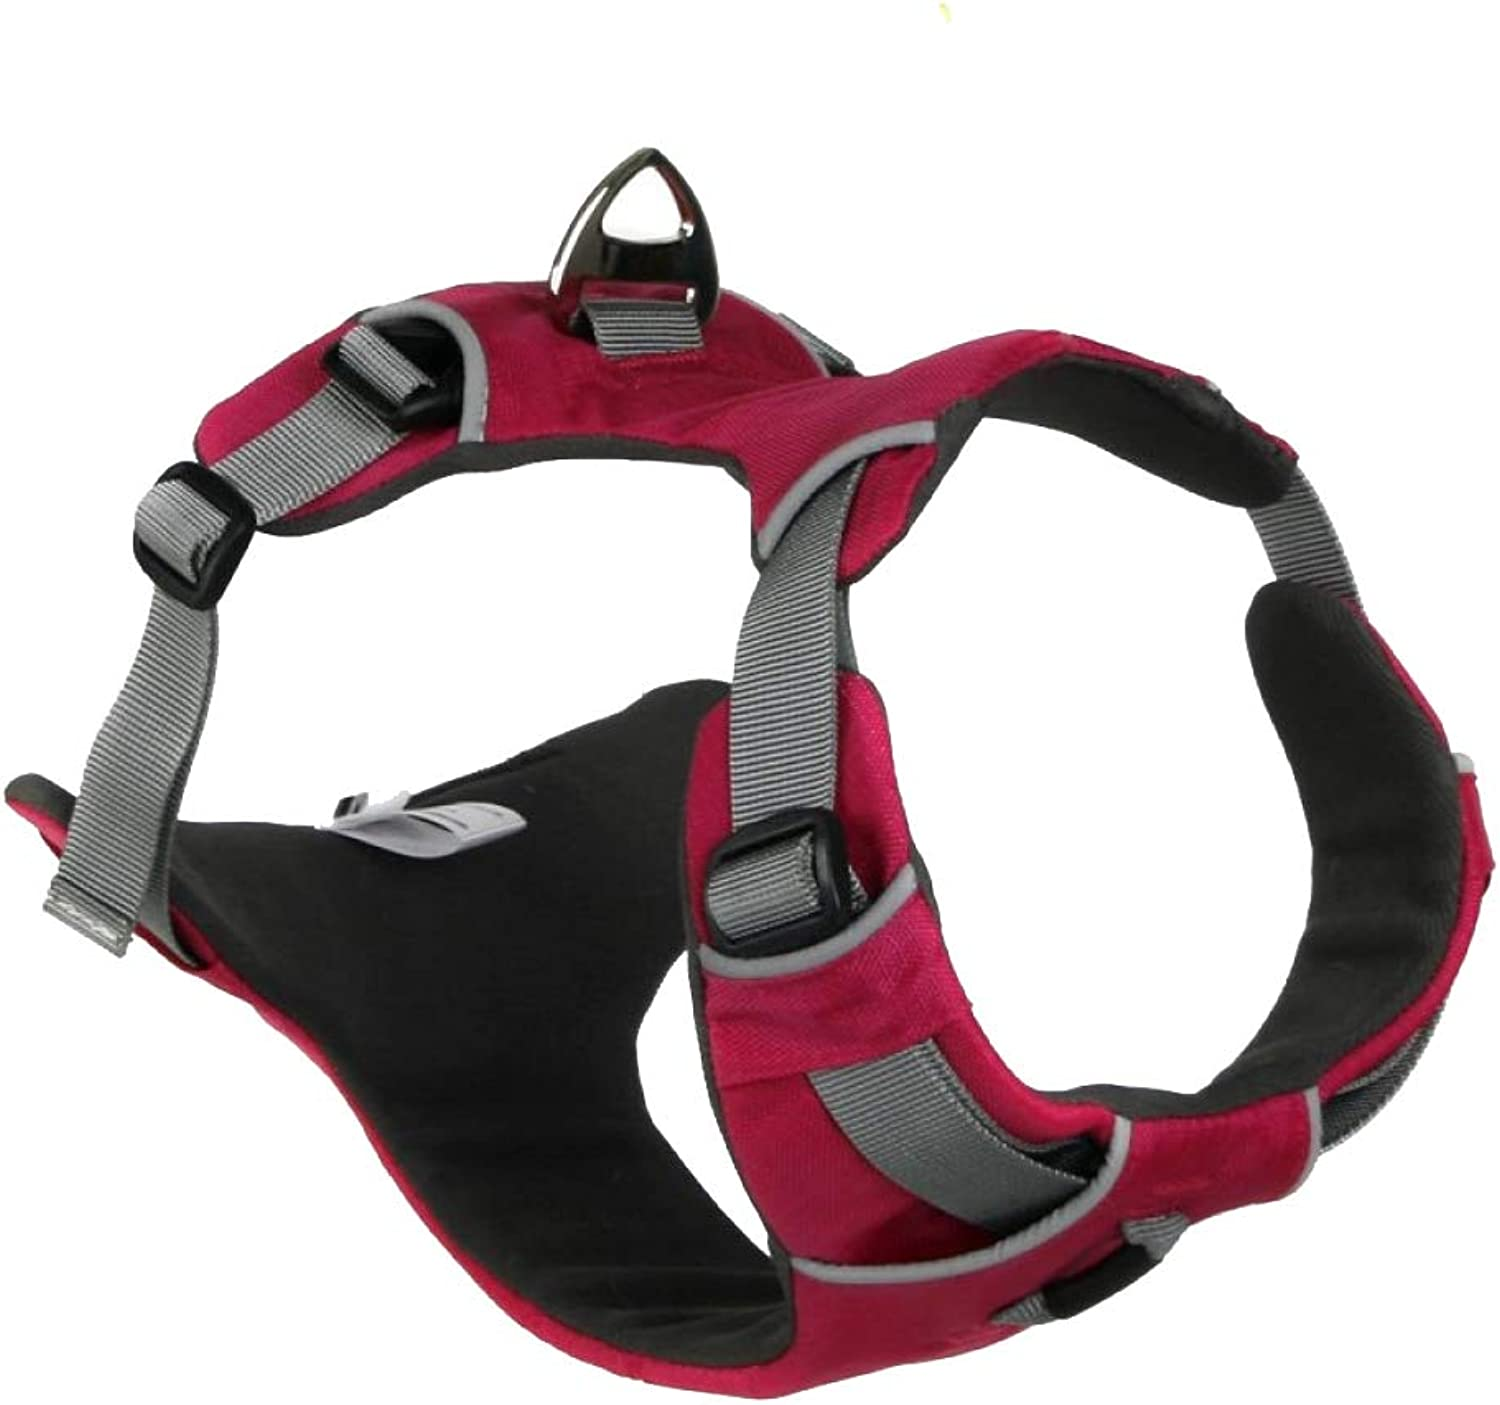 Embark Active Dog Harness, Easy On And Off With Front And Back Lead Attachments Control Handle  No Pull Training, Size Adjustable,PinkL